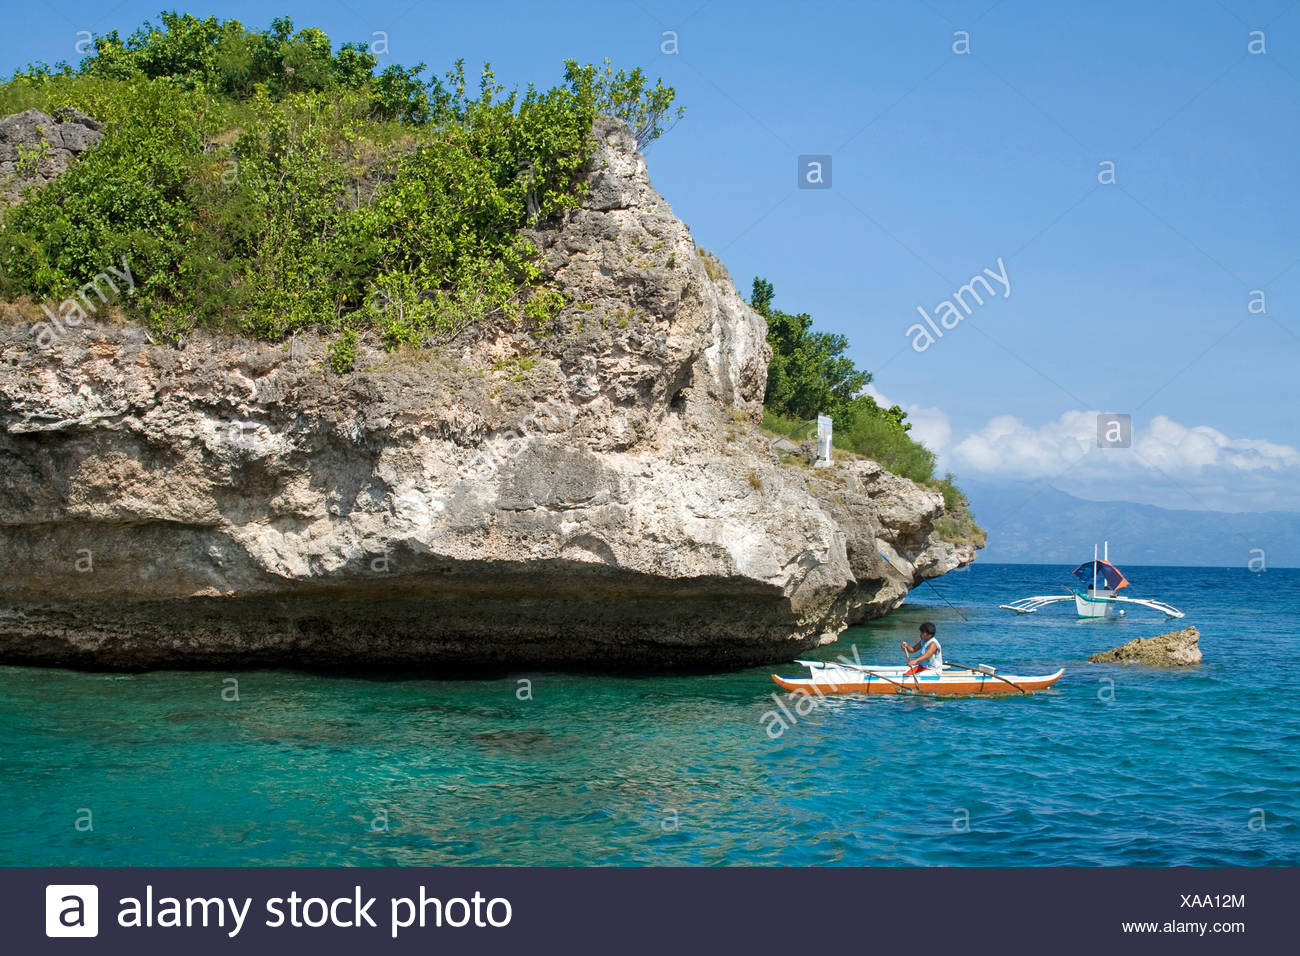 Fishing boat off Pescador Island, well-known dive site and marine park, Moalboal, Cebu, Philippines, Indo-Pacific region, Asia - Stock Image